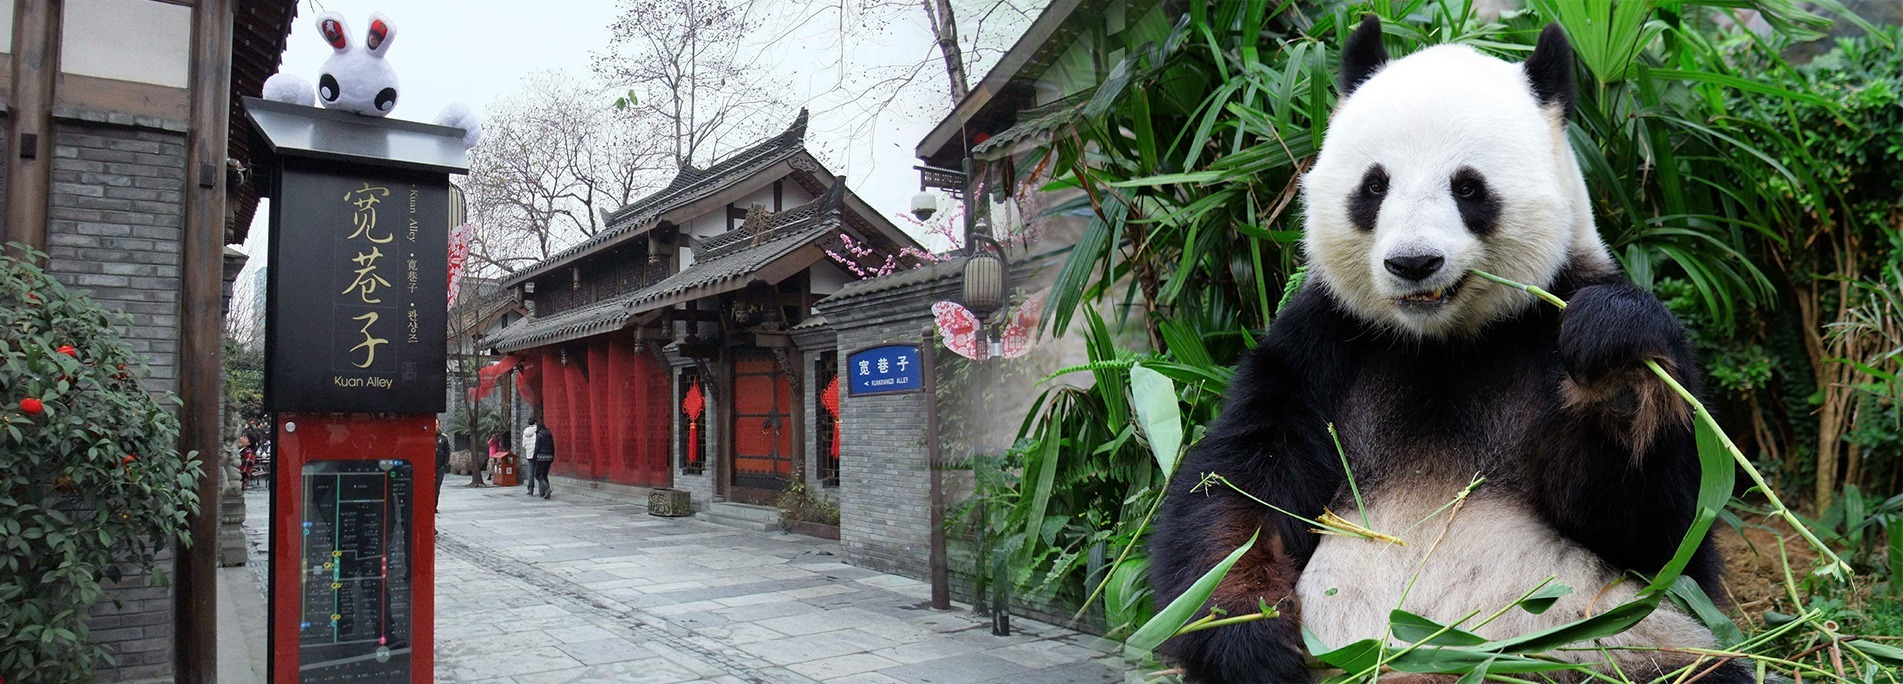 Chengdu Tibet Tours includes most of the scenic spots in Chengdu and Tibet.